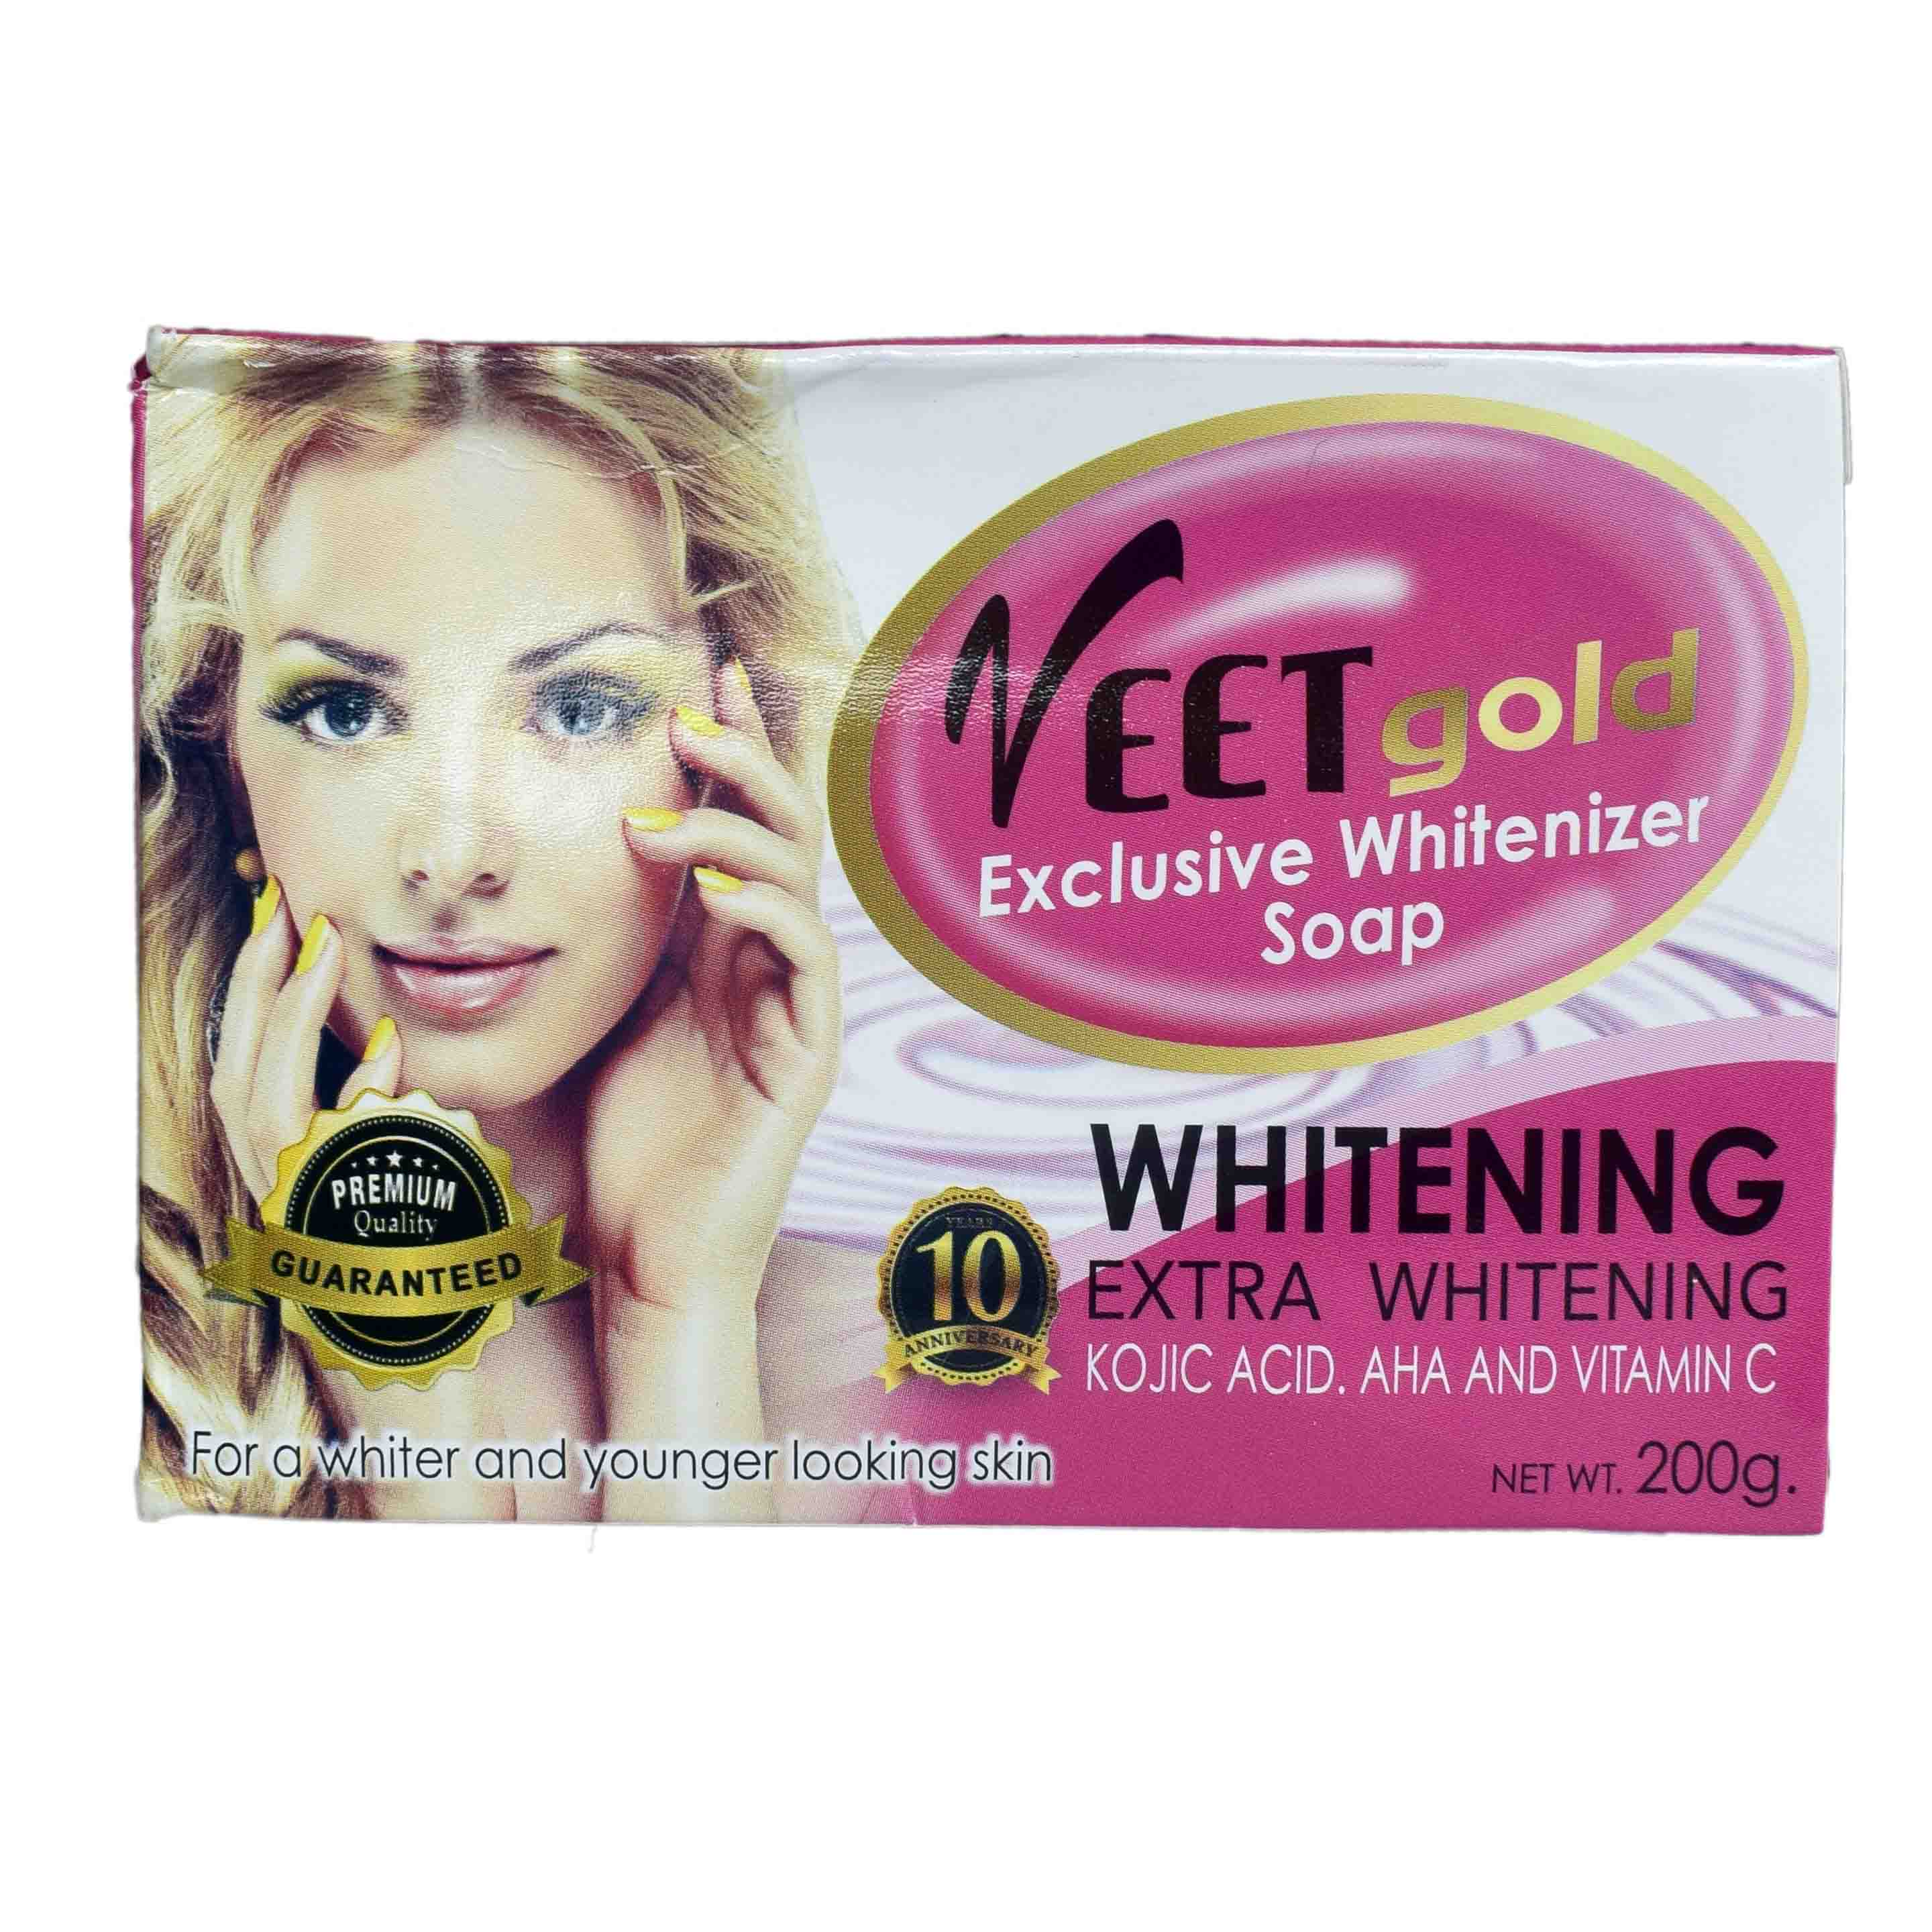 Exclusive Whitenizer Soap